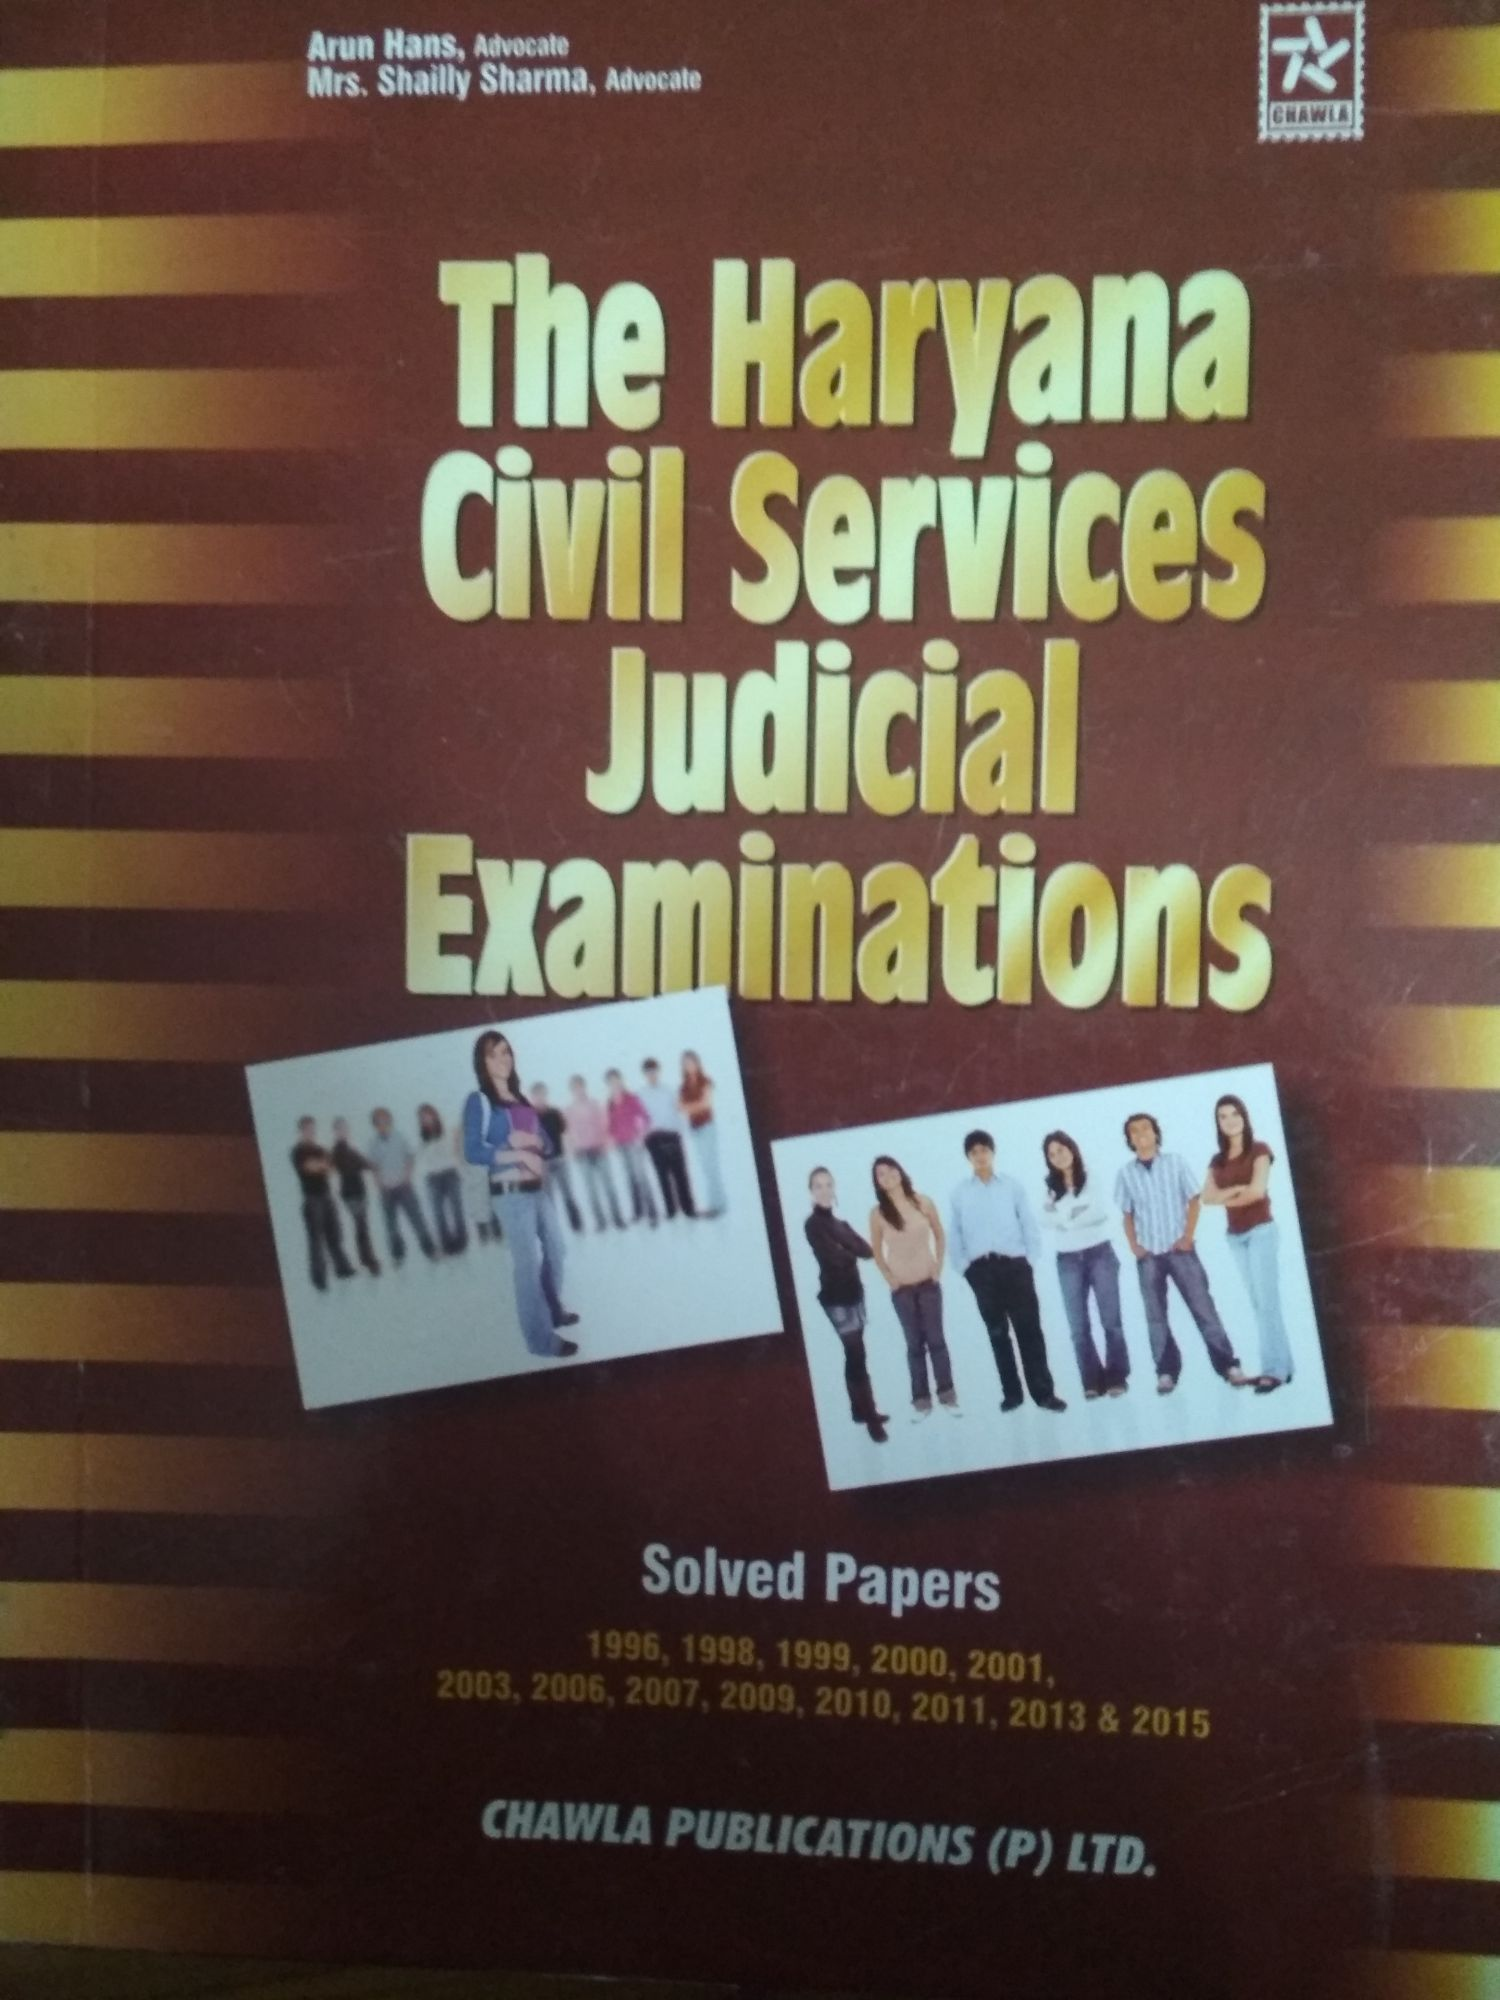 The Haryana Civil Services Judicial Examination